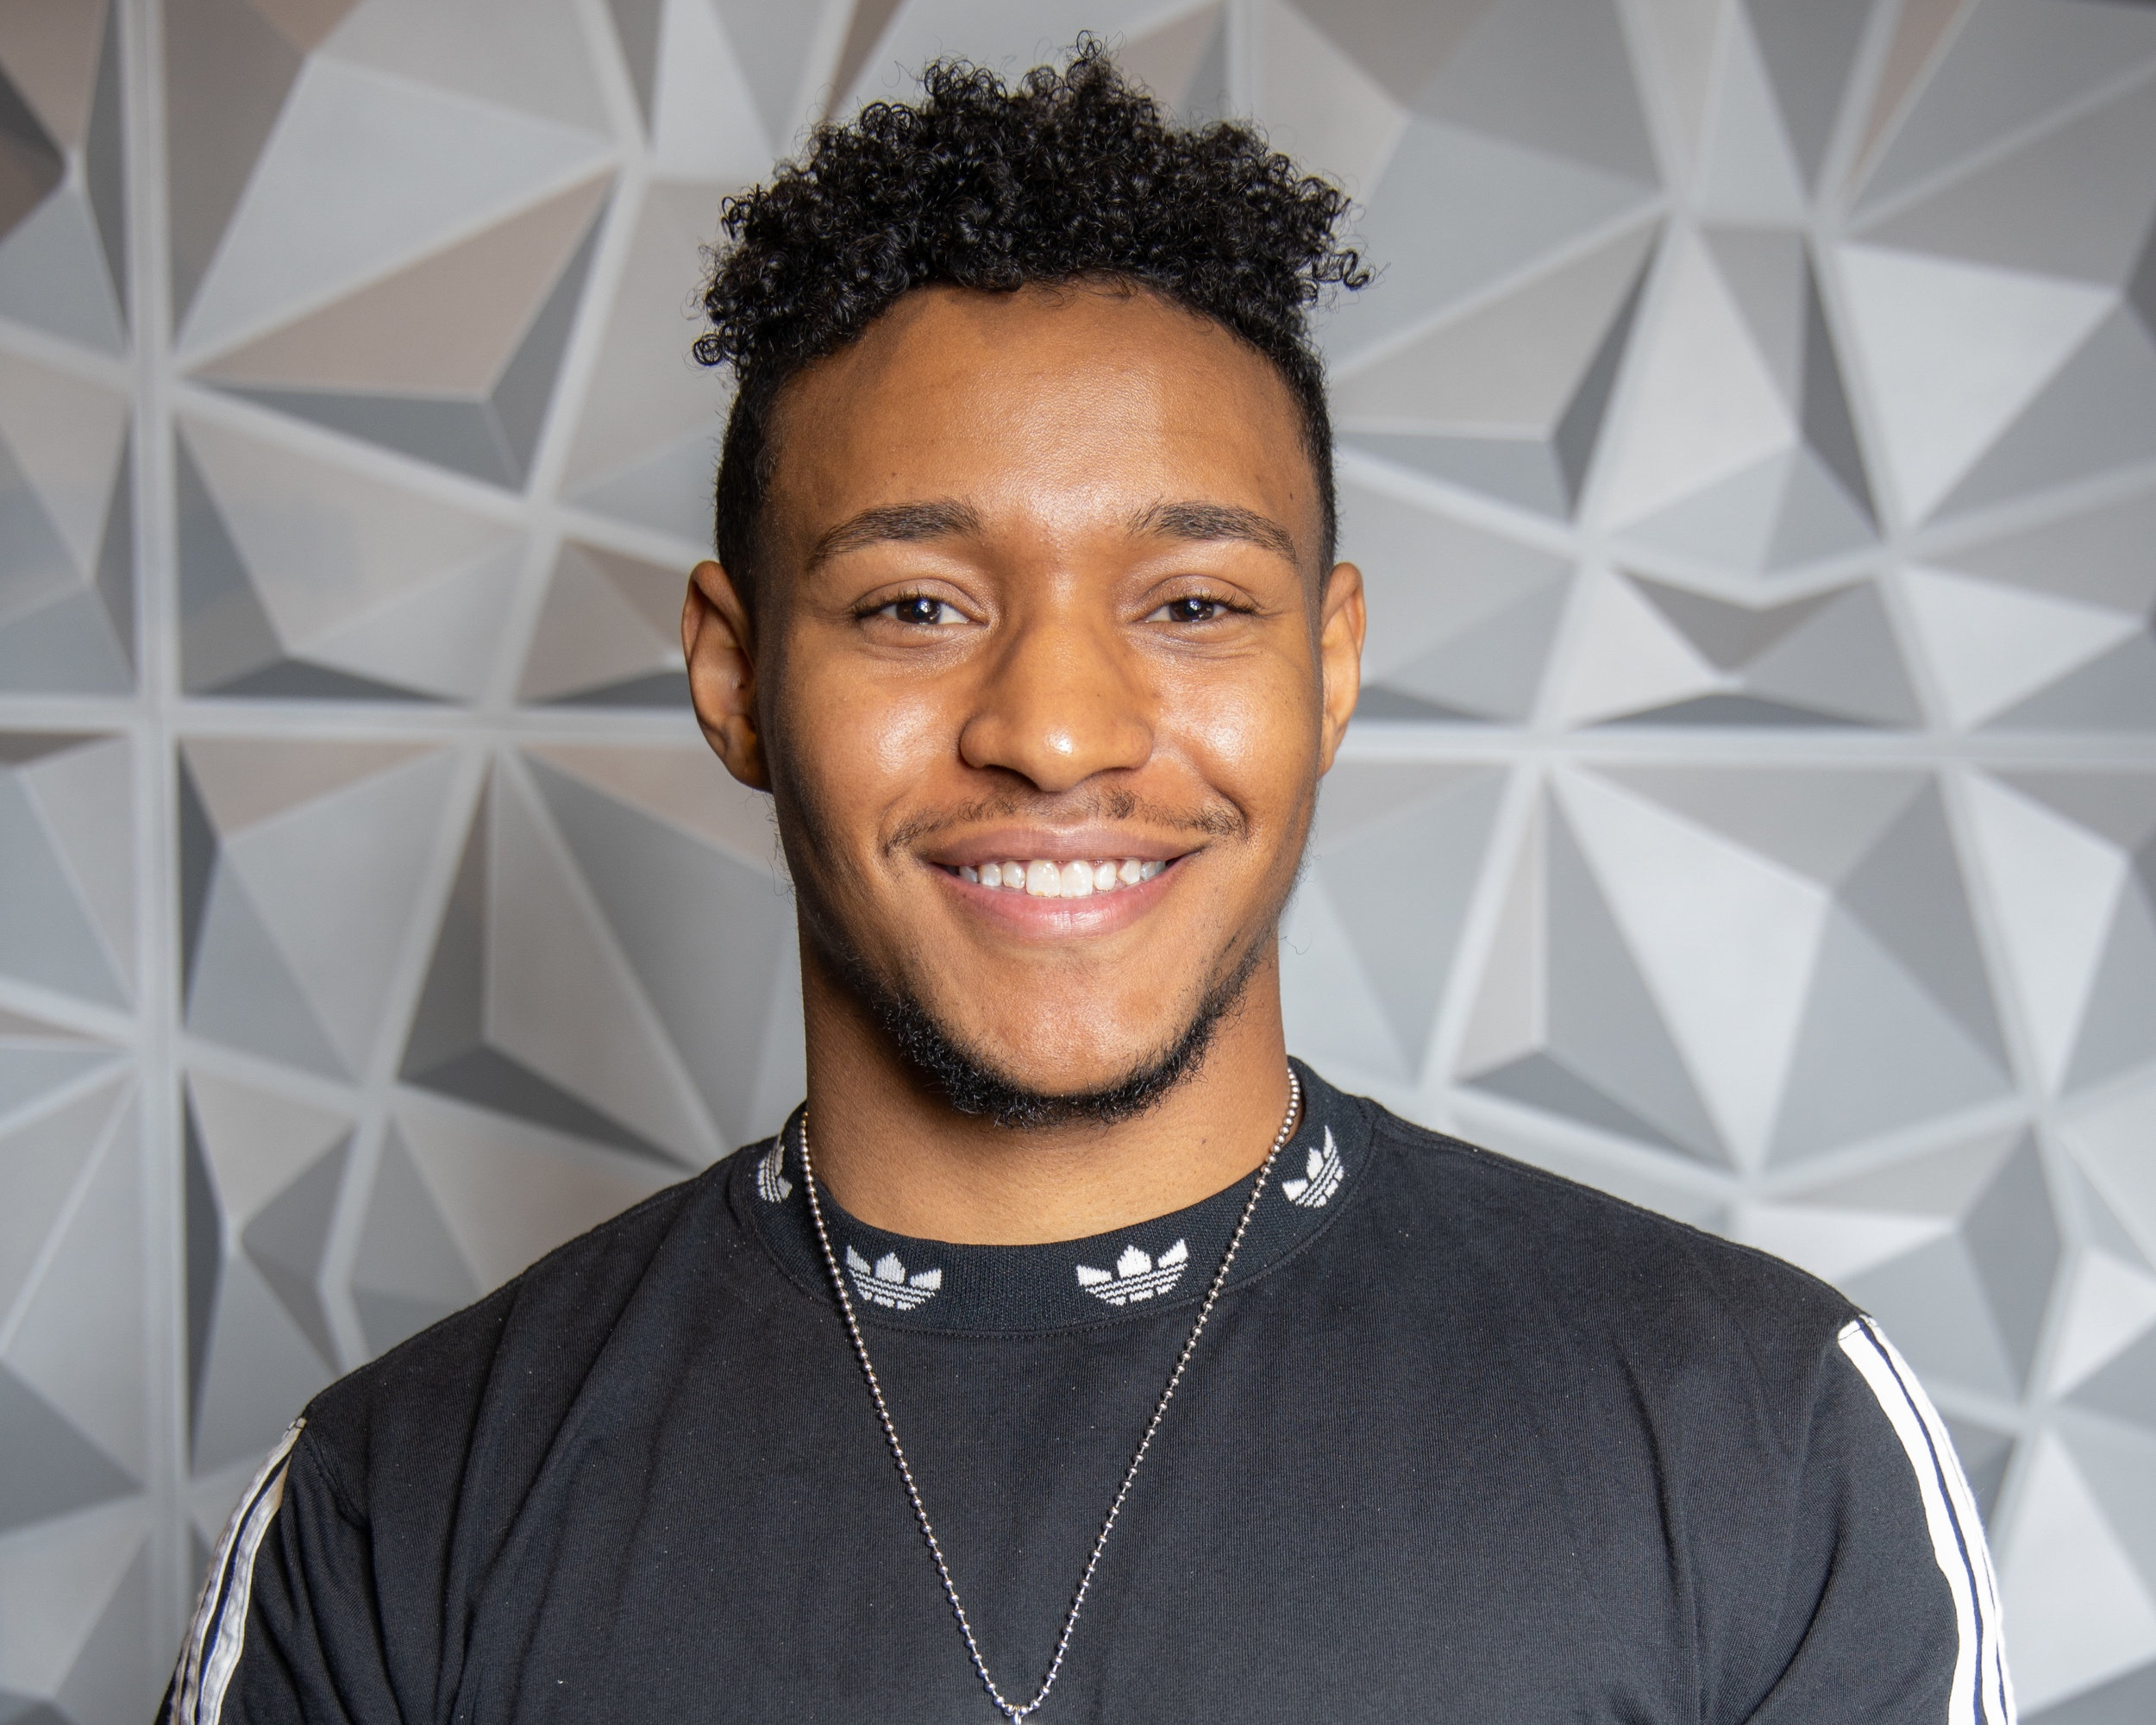 Barron underwood - Barron is all about functional strength, so you can live your best life, in, and more importantly out, of the gym! He has h.i.i.t, strength, and functional mobility training times on Mondays Wednesdays and Saturdays.